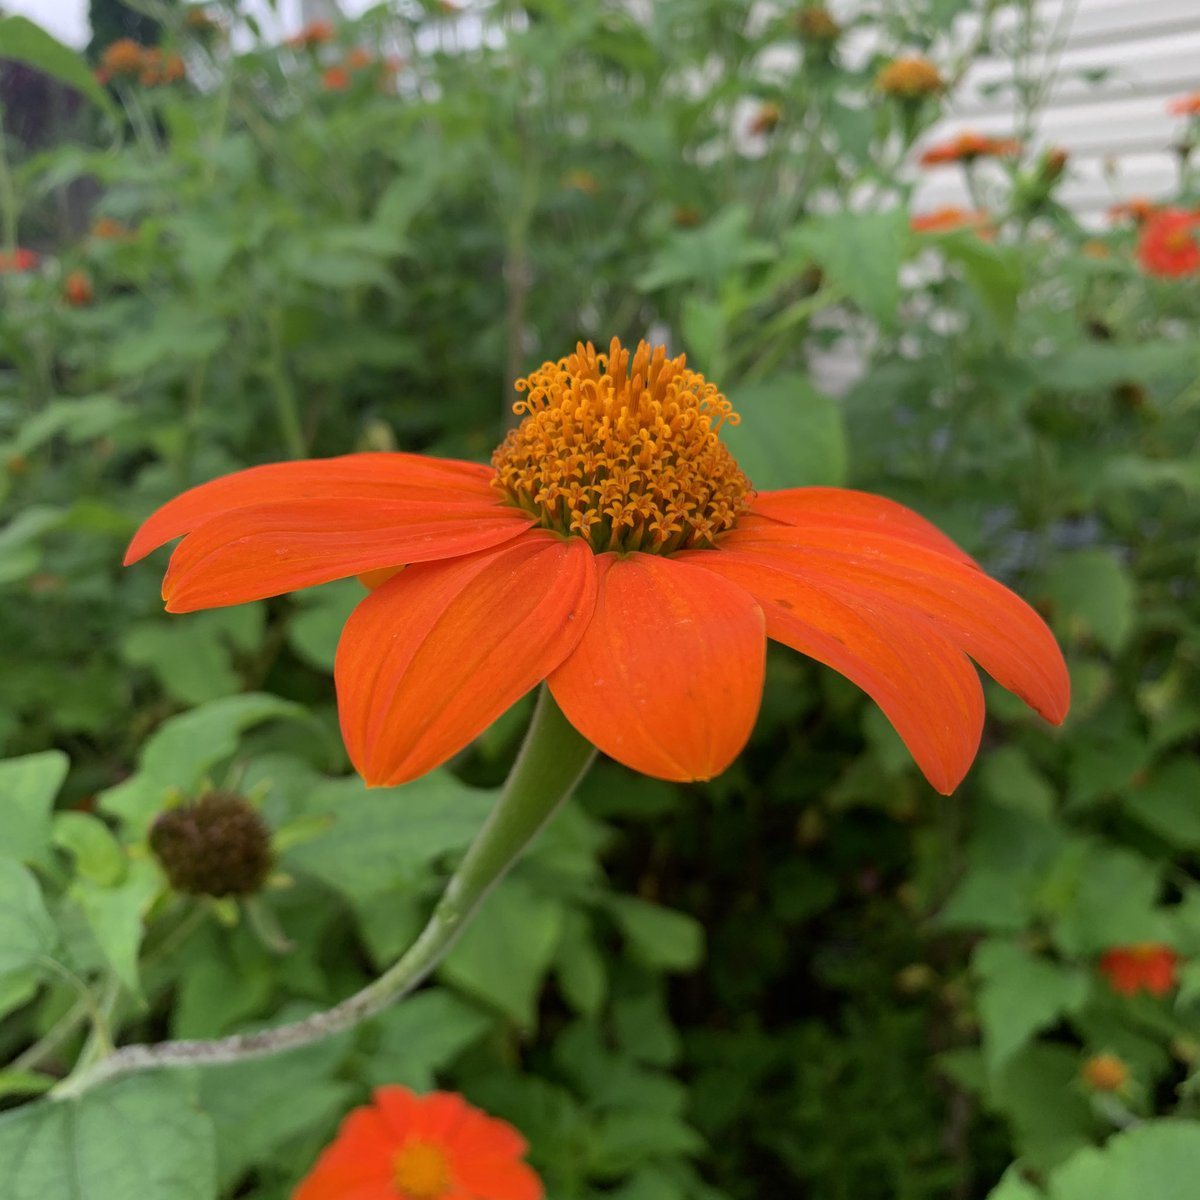 @TerriResists @EMC_Maine @JenMGardens @passthepistil @thefreckledrose @oh_grow_on @BrenHaas @saunieindiego @Fuchsiarius @billblevins The goldfinches and hummingbirds love it too #tithonia #mexicansunflower https://t.co/4h5Q8cd2pT